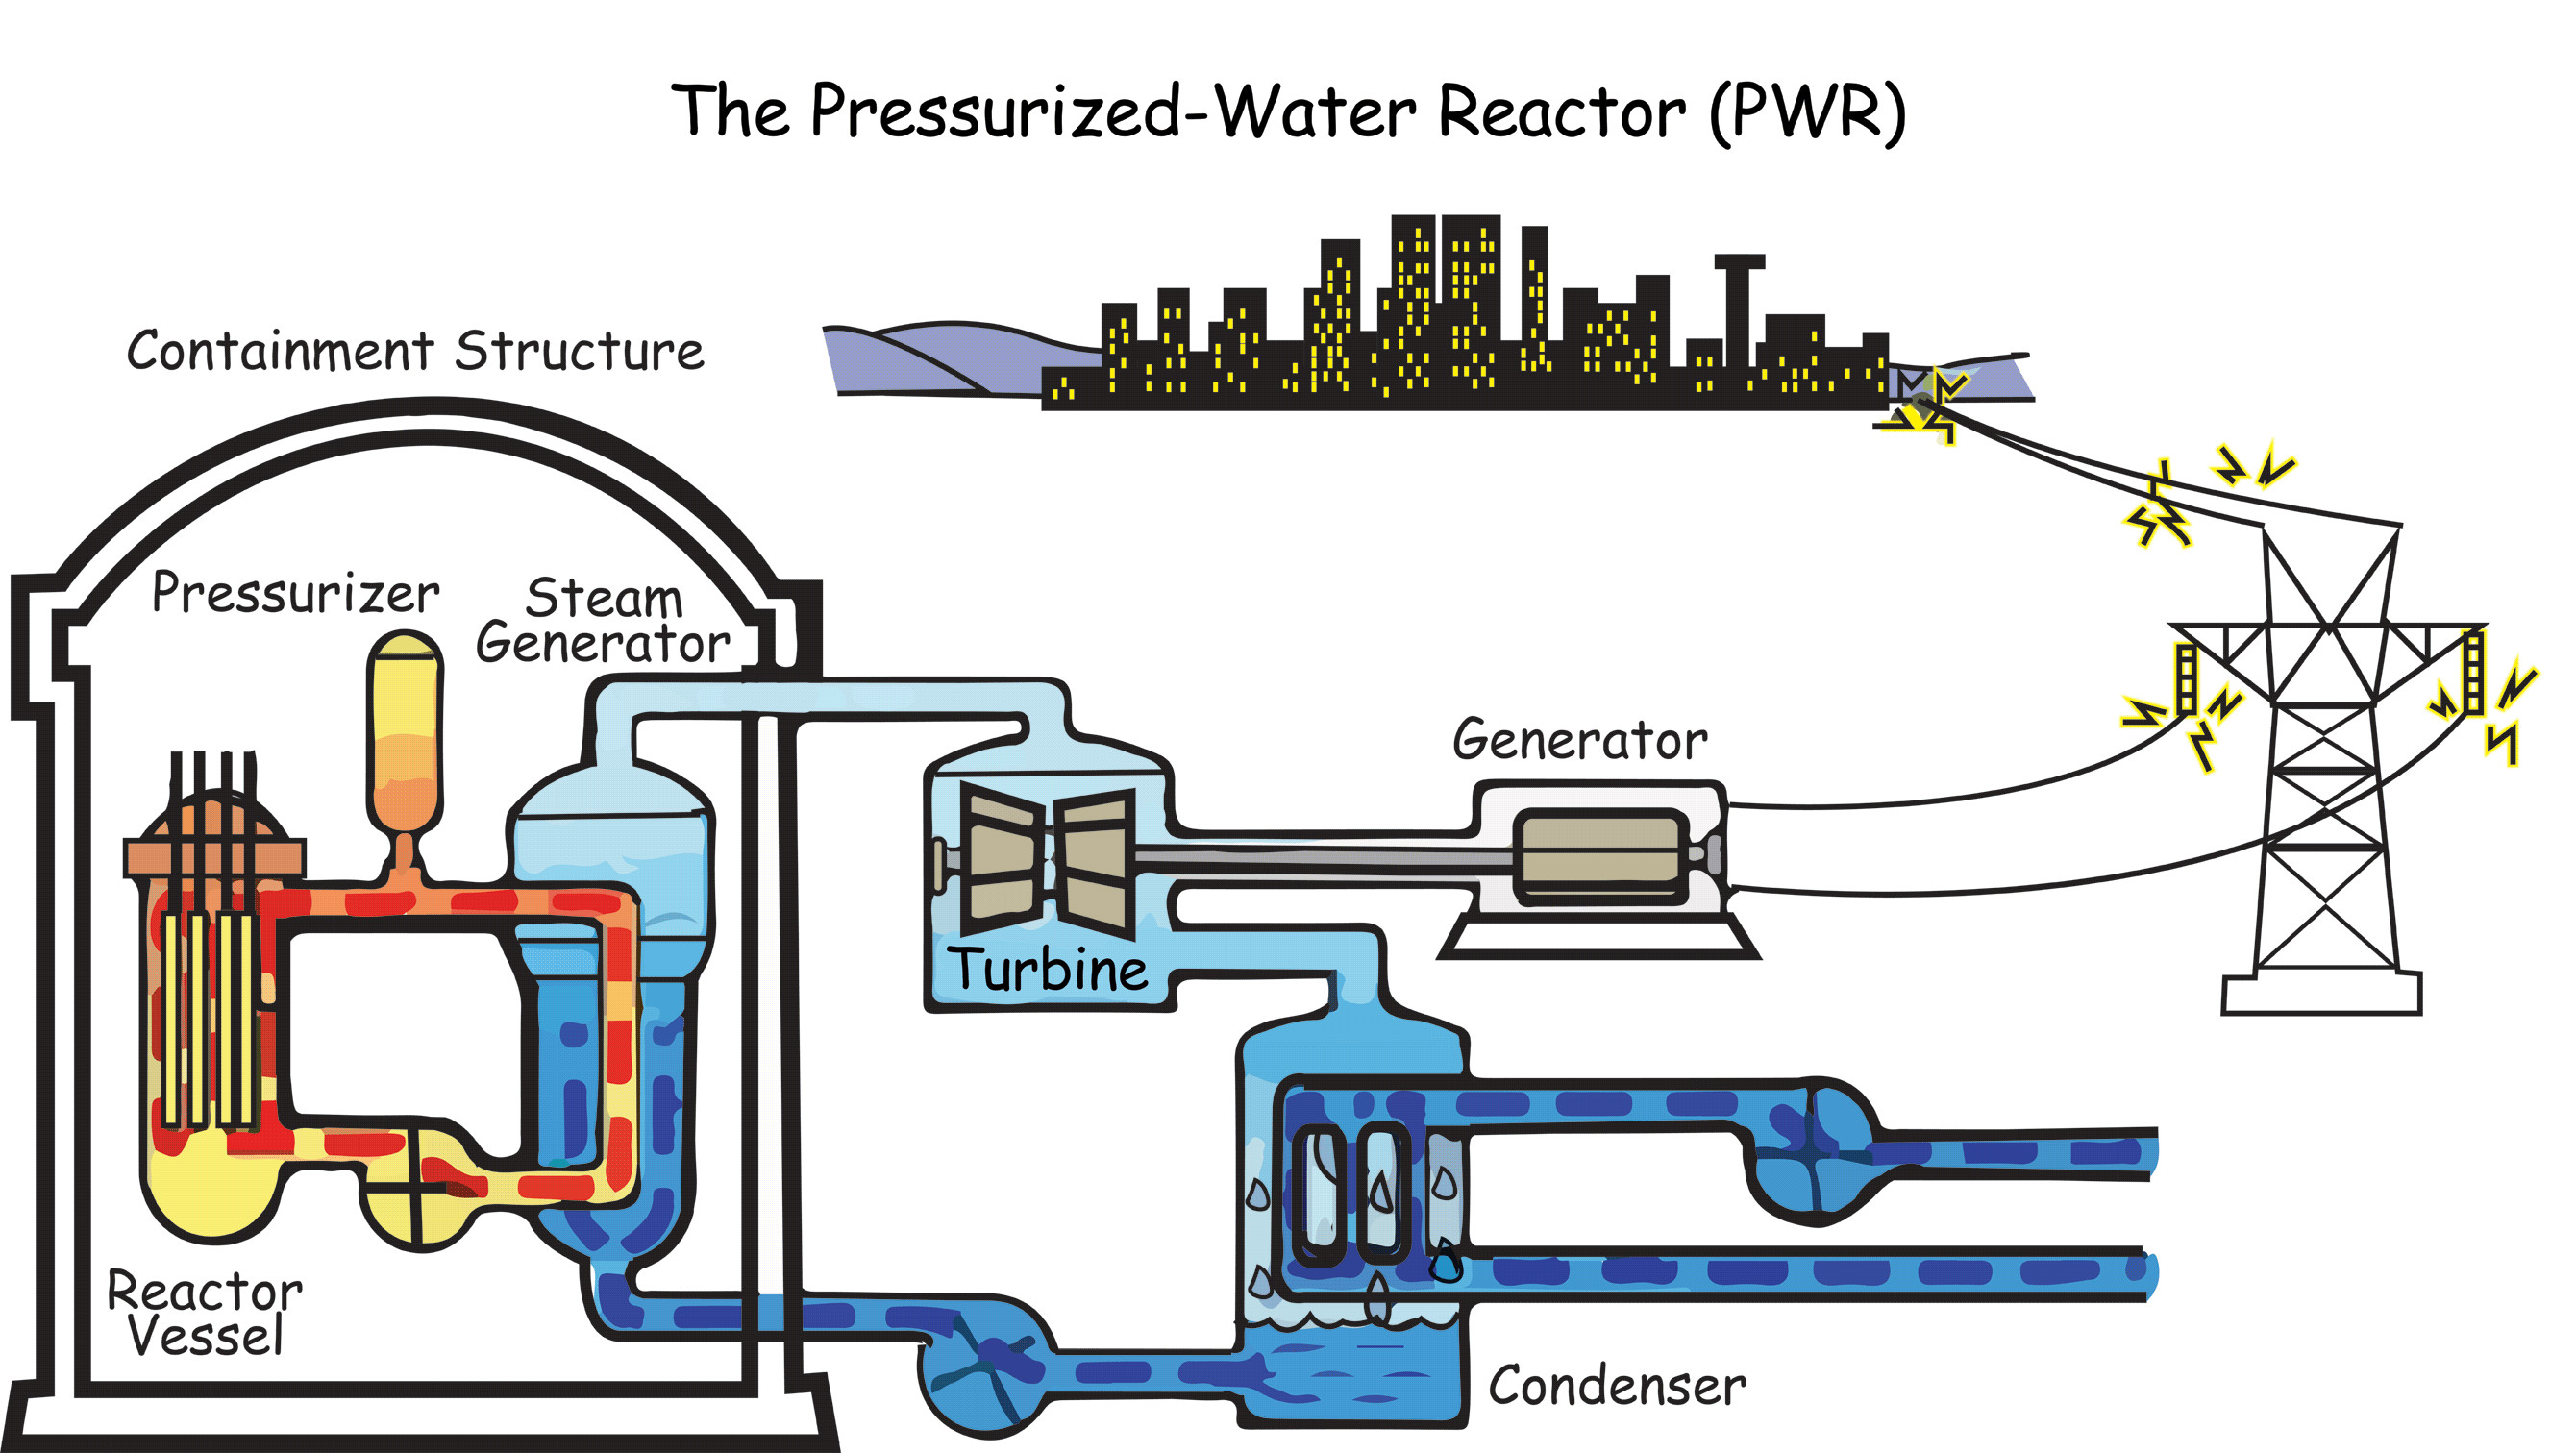 nuclear power plant working thermal power plant layout and operation nuclear power plant layout and operation #2